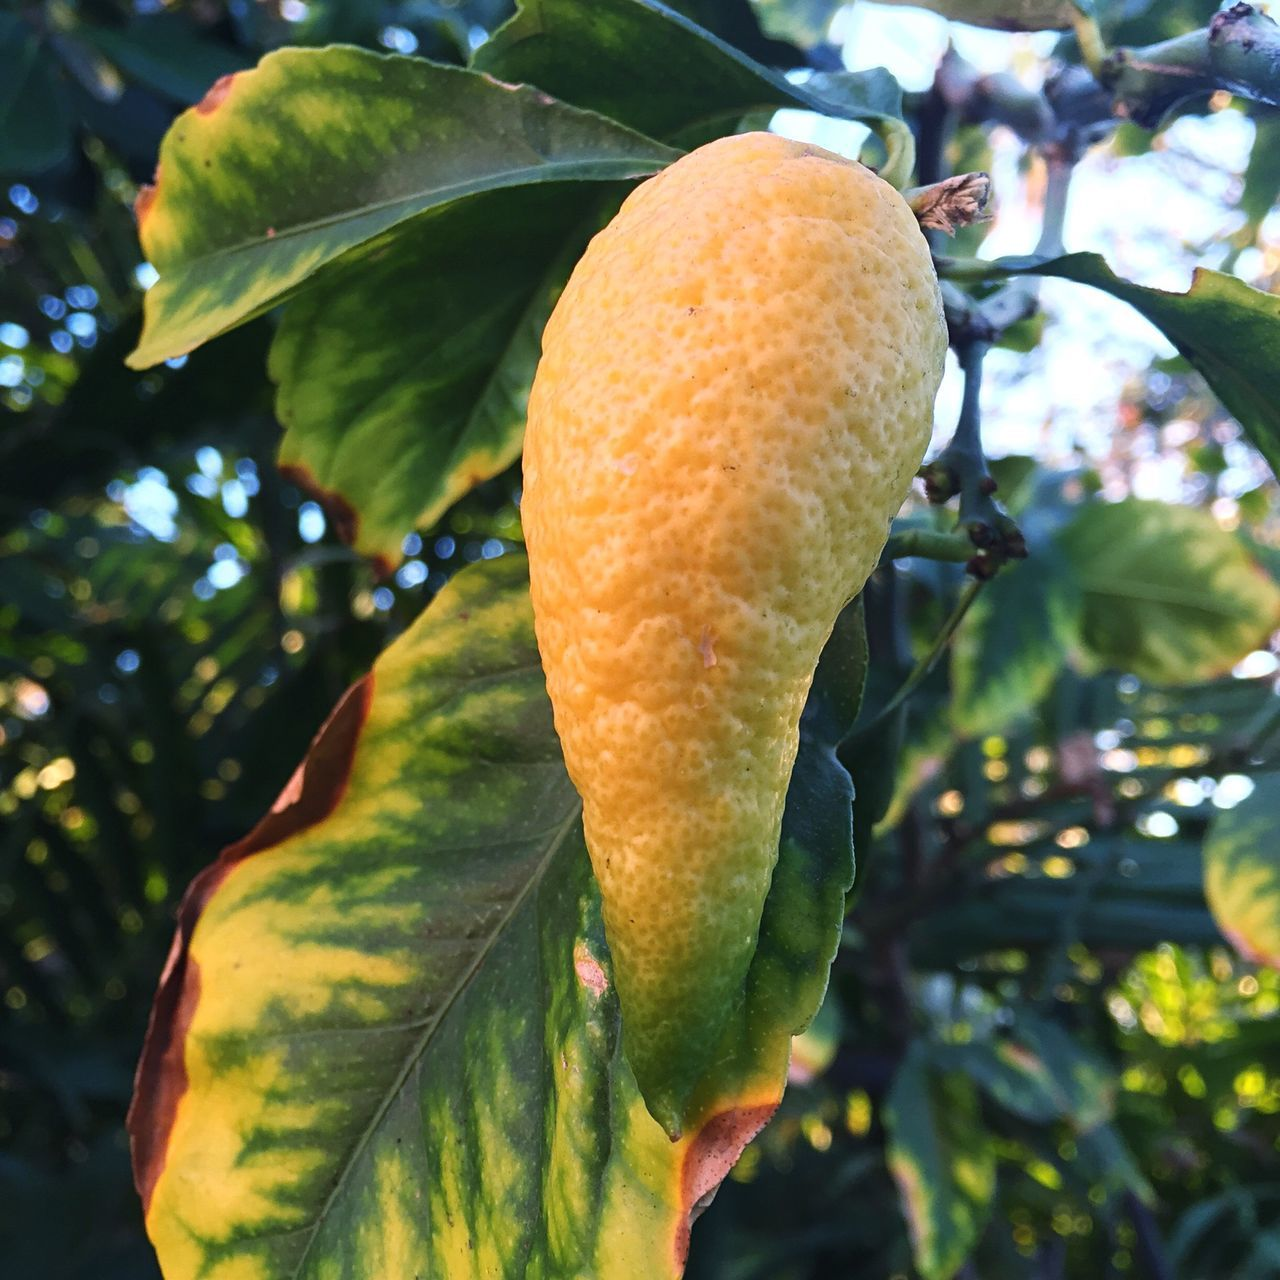 Lemon Tree Strange Fruit Weirdly Shaped Check This Out Roamography Leaves Lemon Green Yellow Vivid Colours  Backyardphotography Paint The Town Yellow